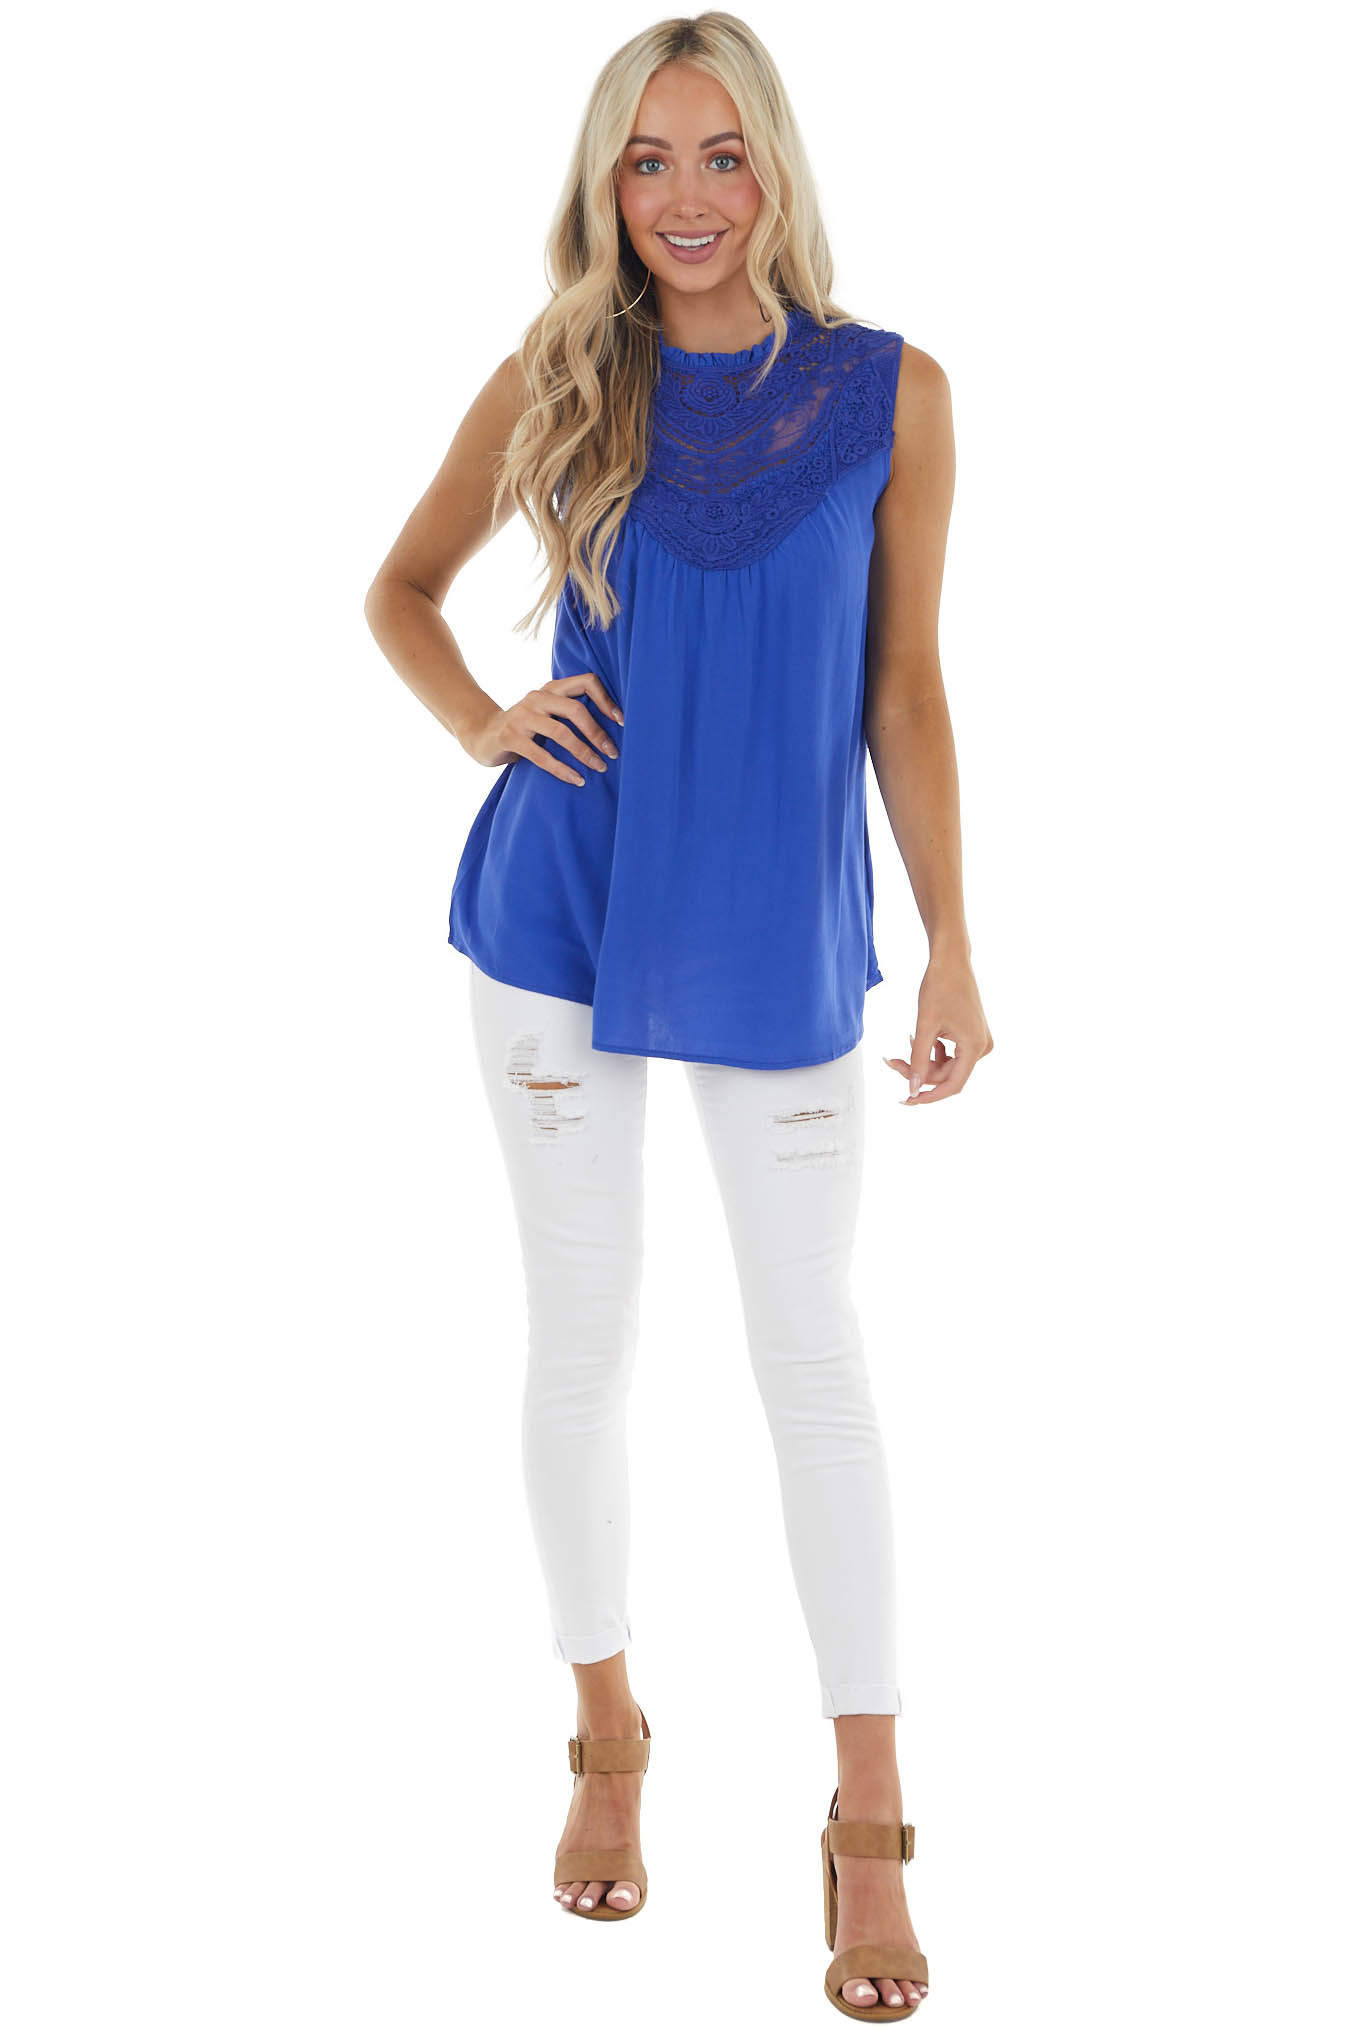 Catalina Blue Sleeveless Top with Crocheted Neckline Detail